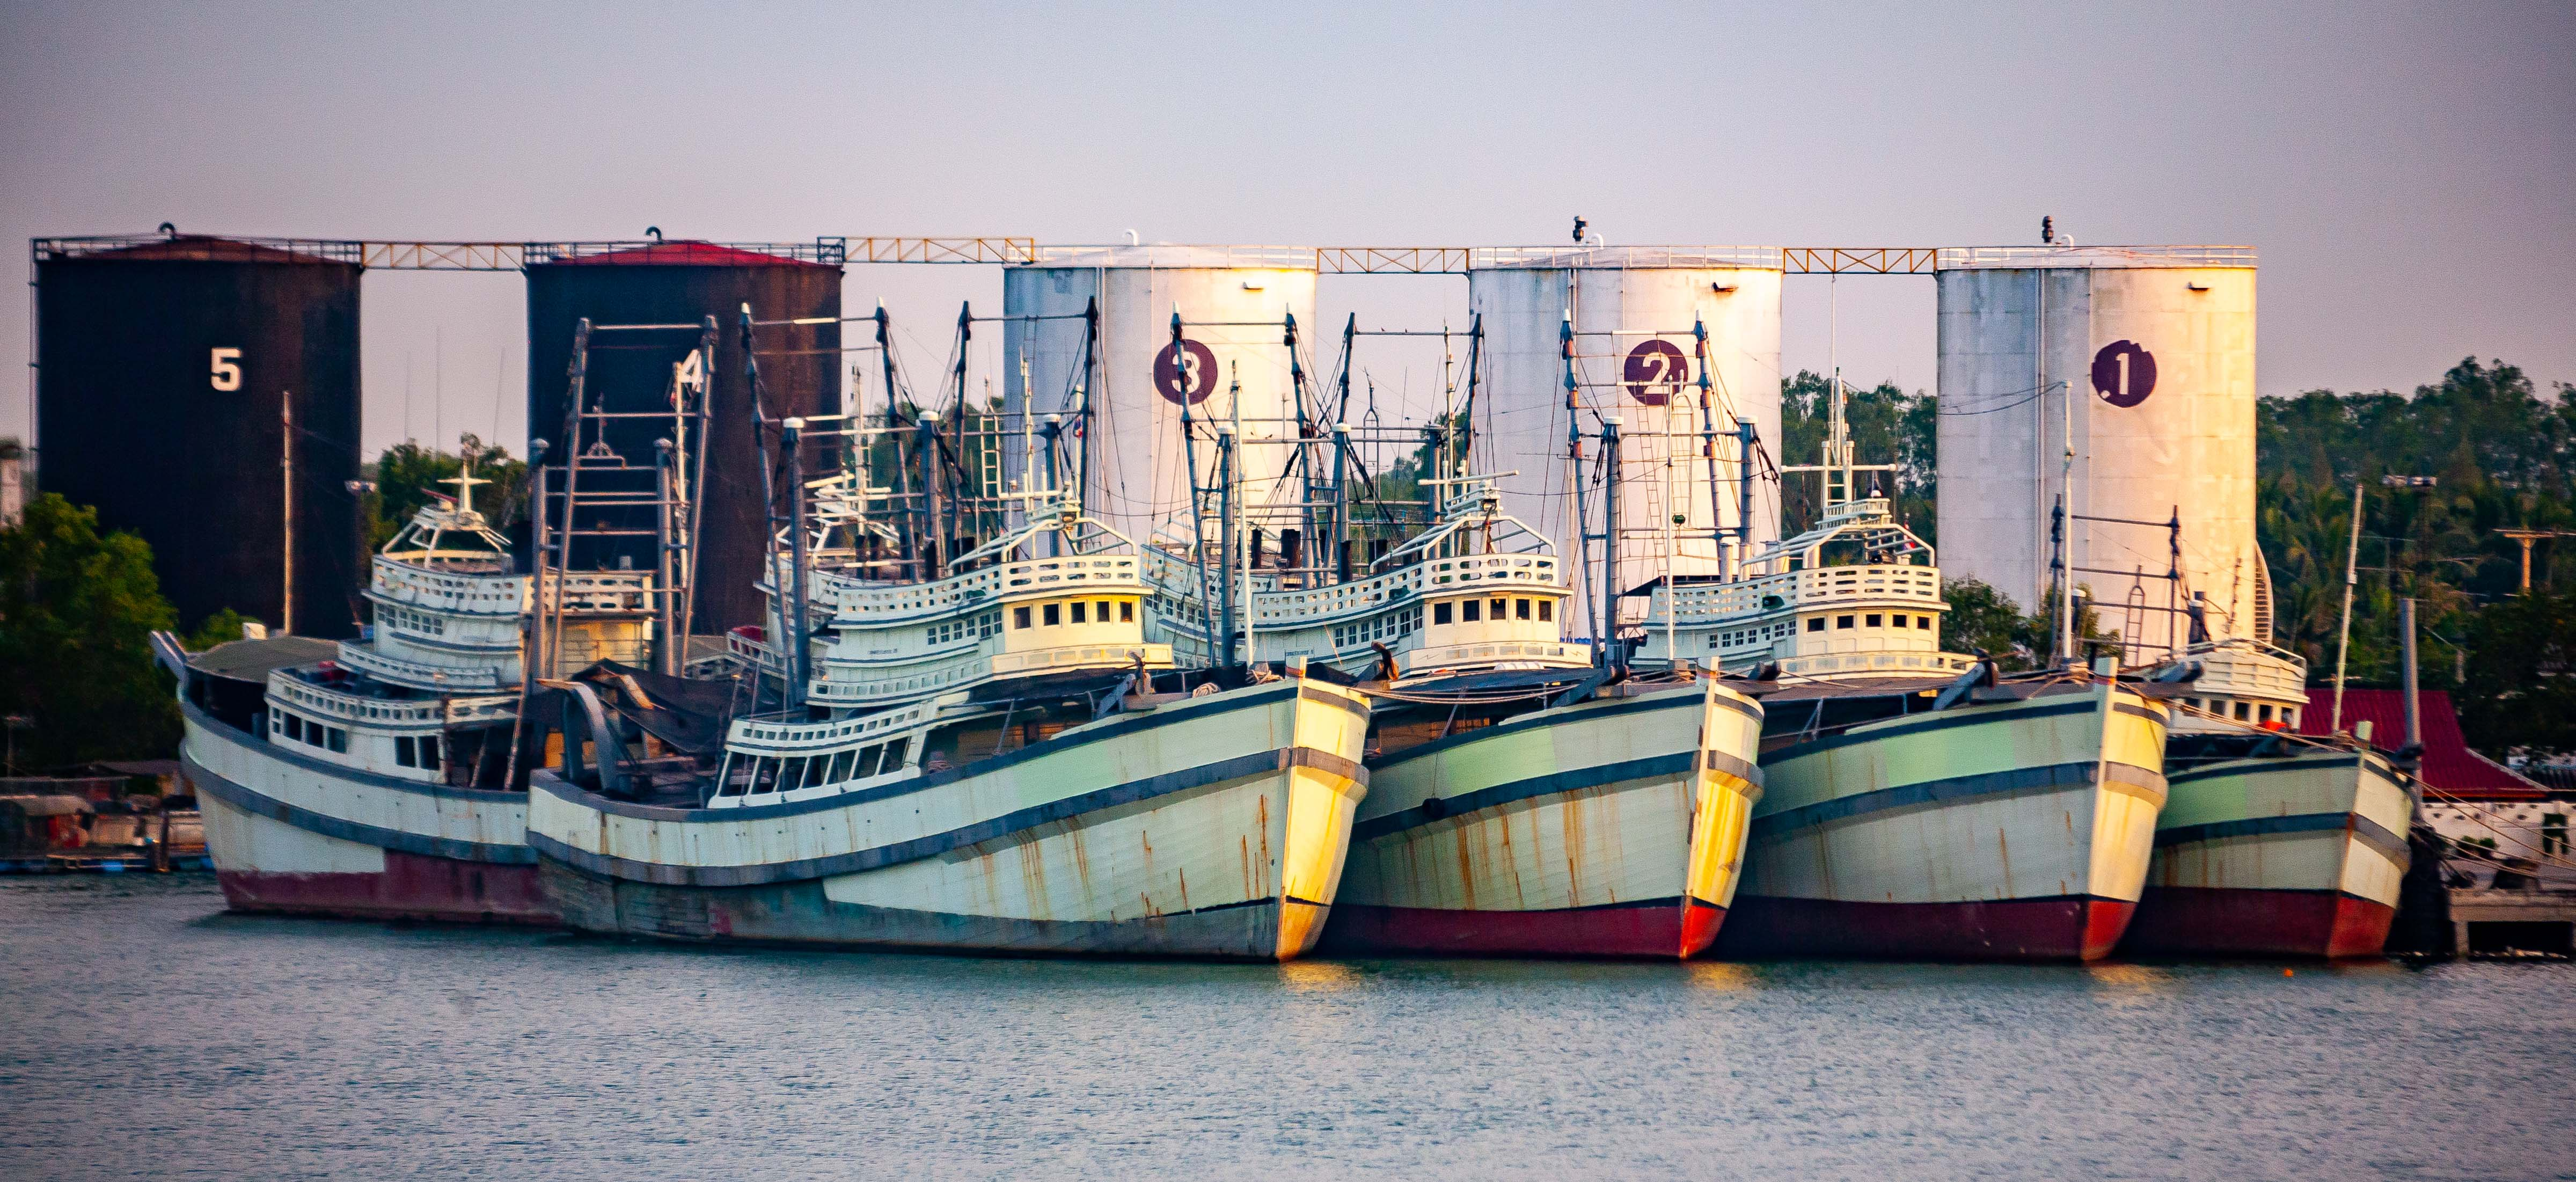 Thailand, Samut Songkhram Prov, Boats And Tanks, 2008, IMG 1324